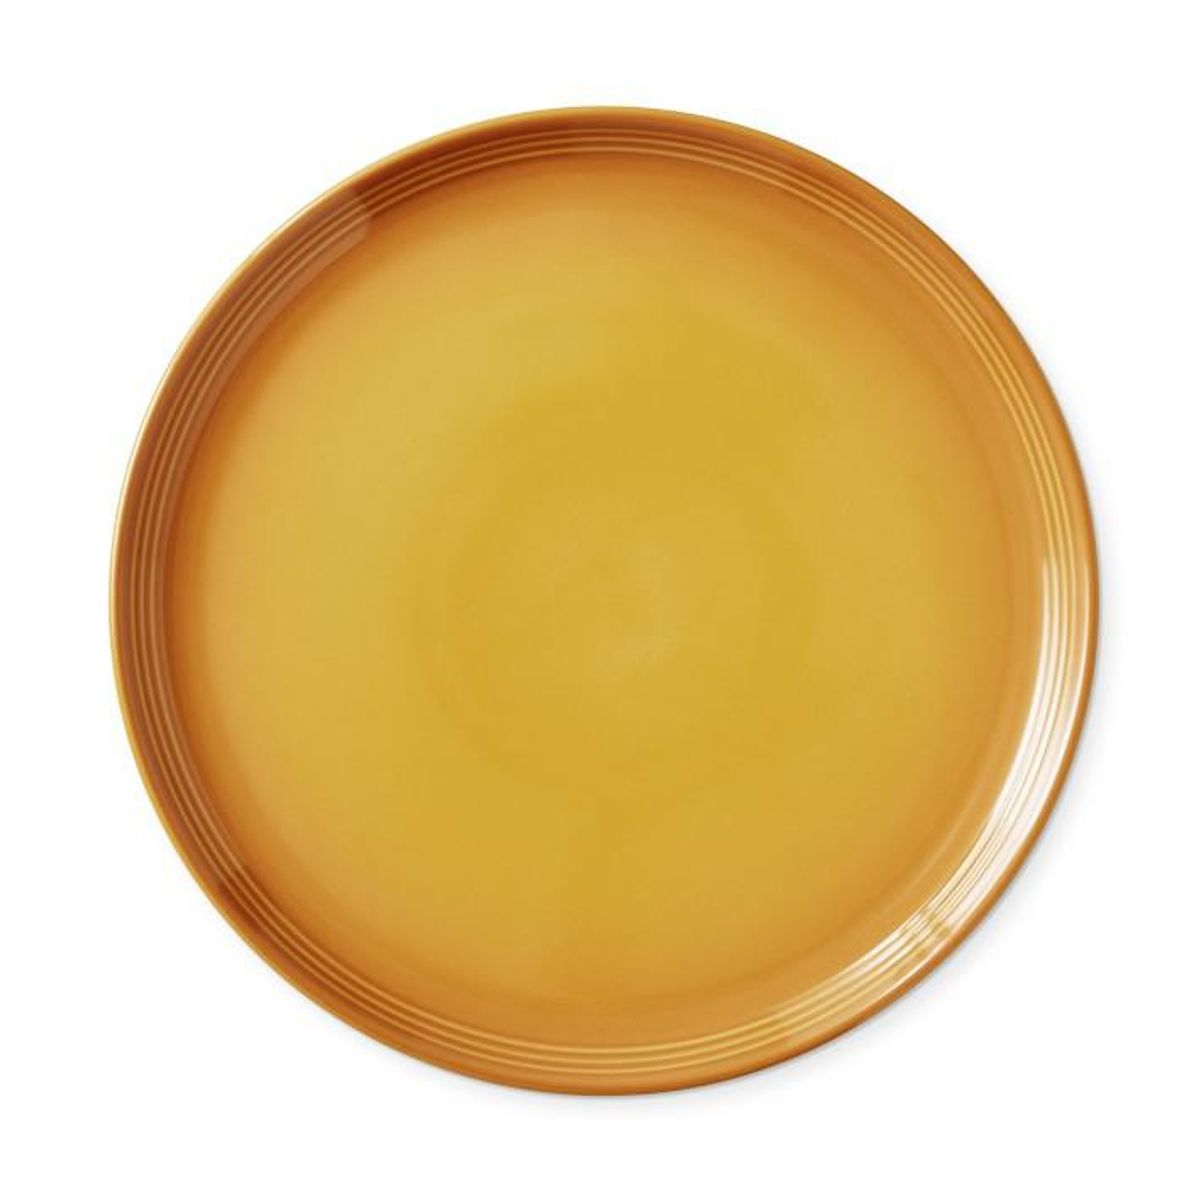 Coupe Dinner Plates in Nectar